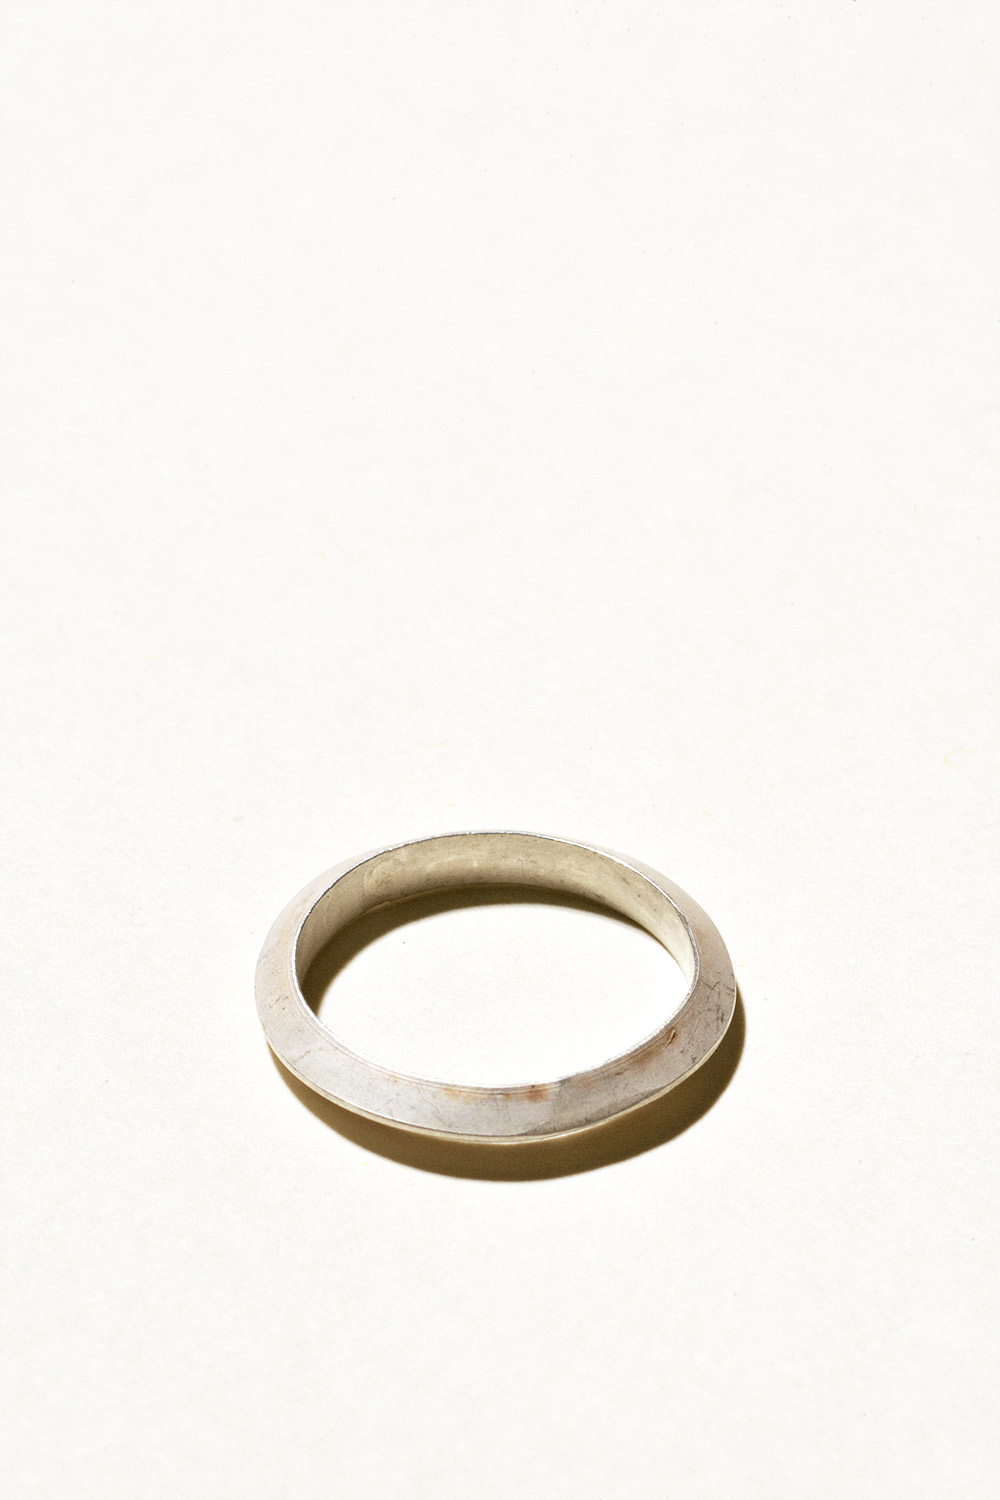 Slim Prism Ring - 3mm wideSterling Silver, Raw FinishHand Smithed $45